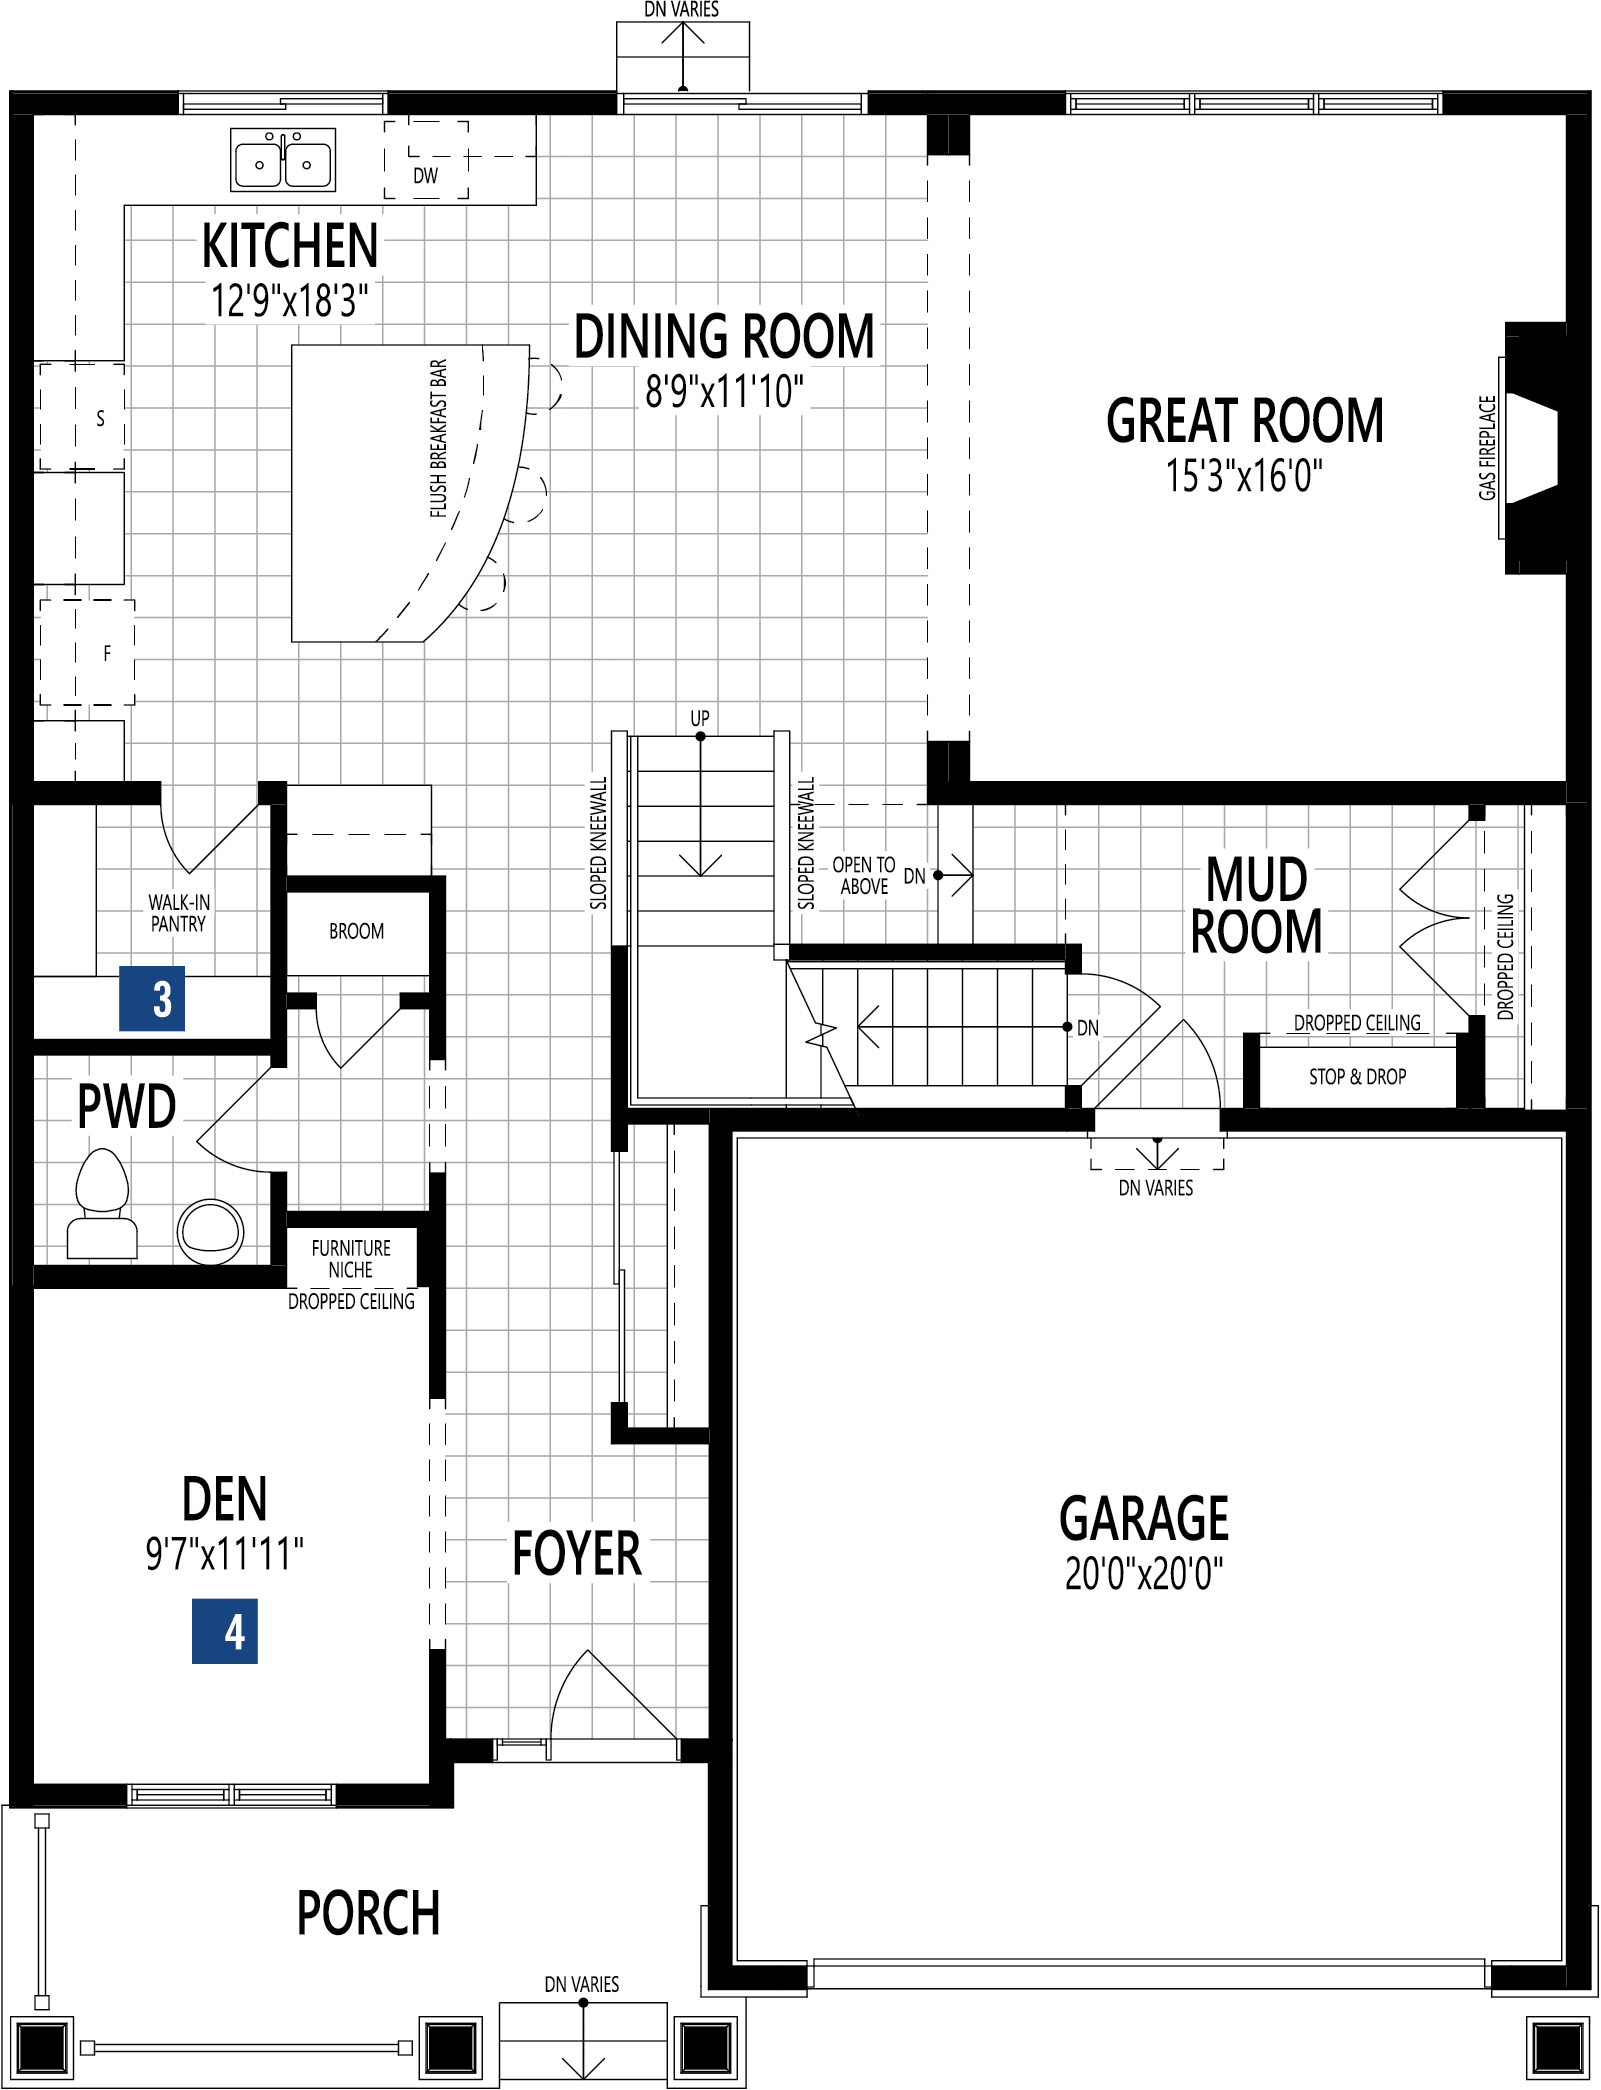 Cline Plan Floor Plan at Cityscape in Calgary Alberta by Mattamy Homes